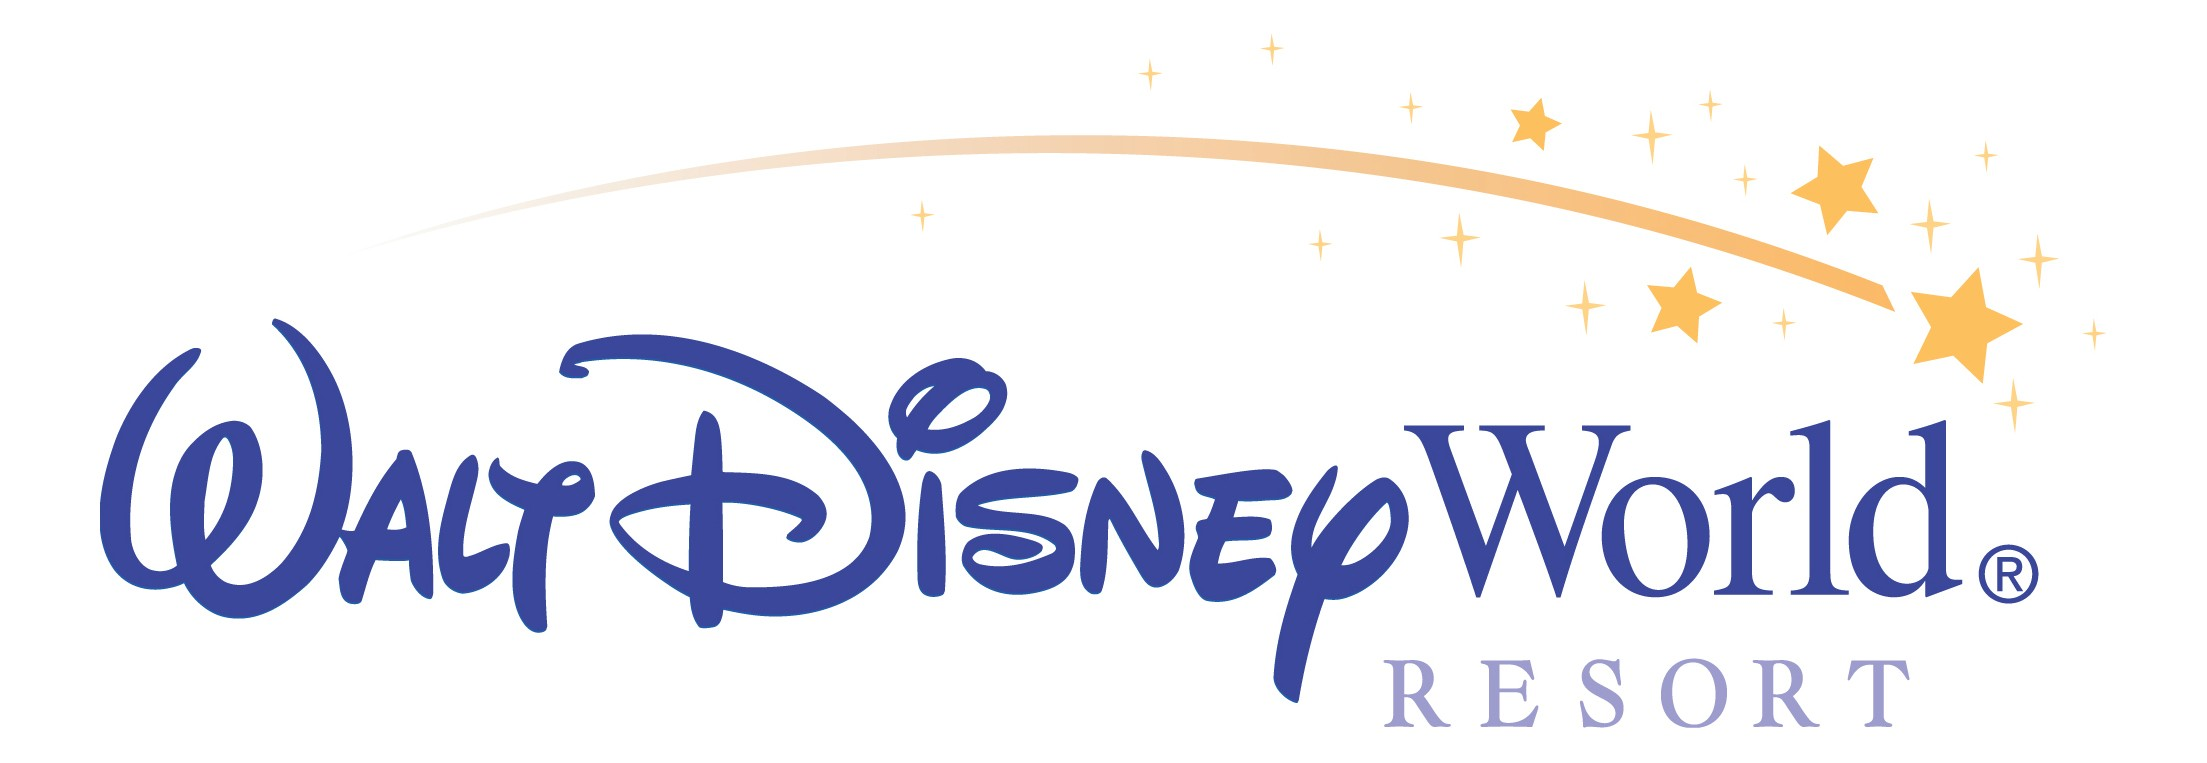 4 park disney logo clipart graphic free download Walt Disney Parks and Resorts | Disney Wiki | Fandom powered by Wikia graphic free download